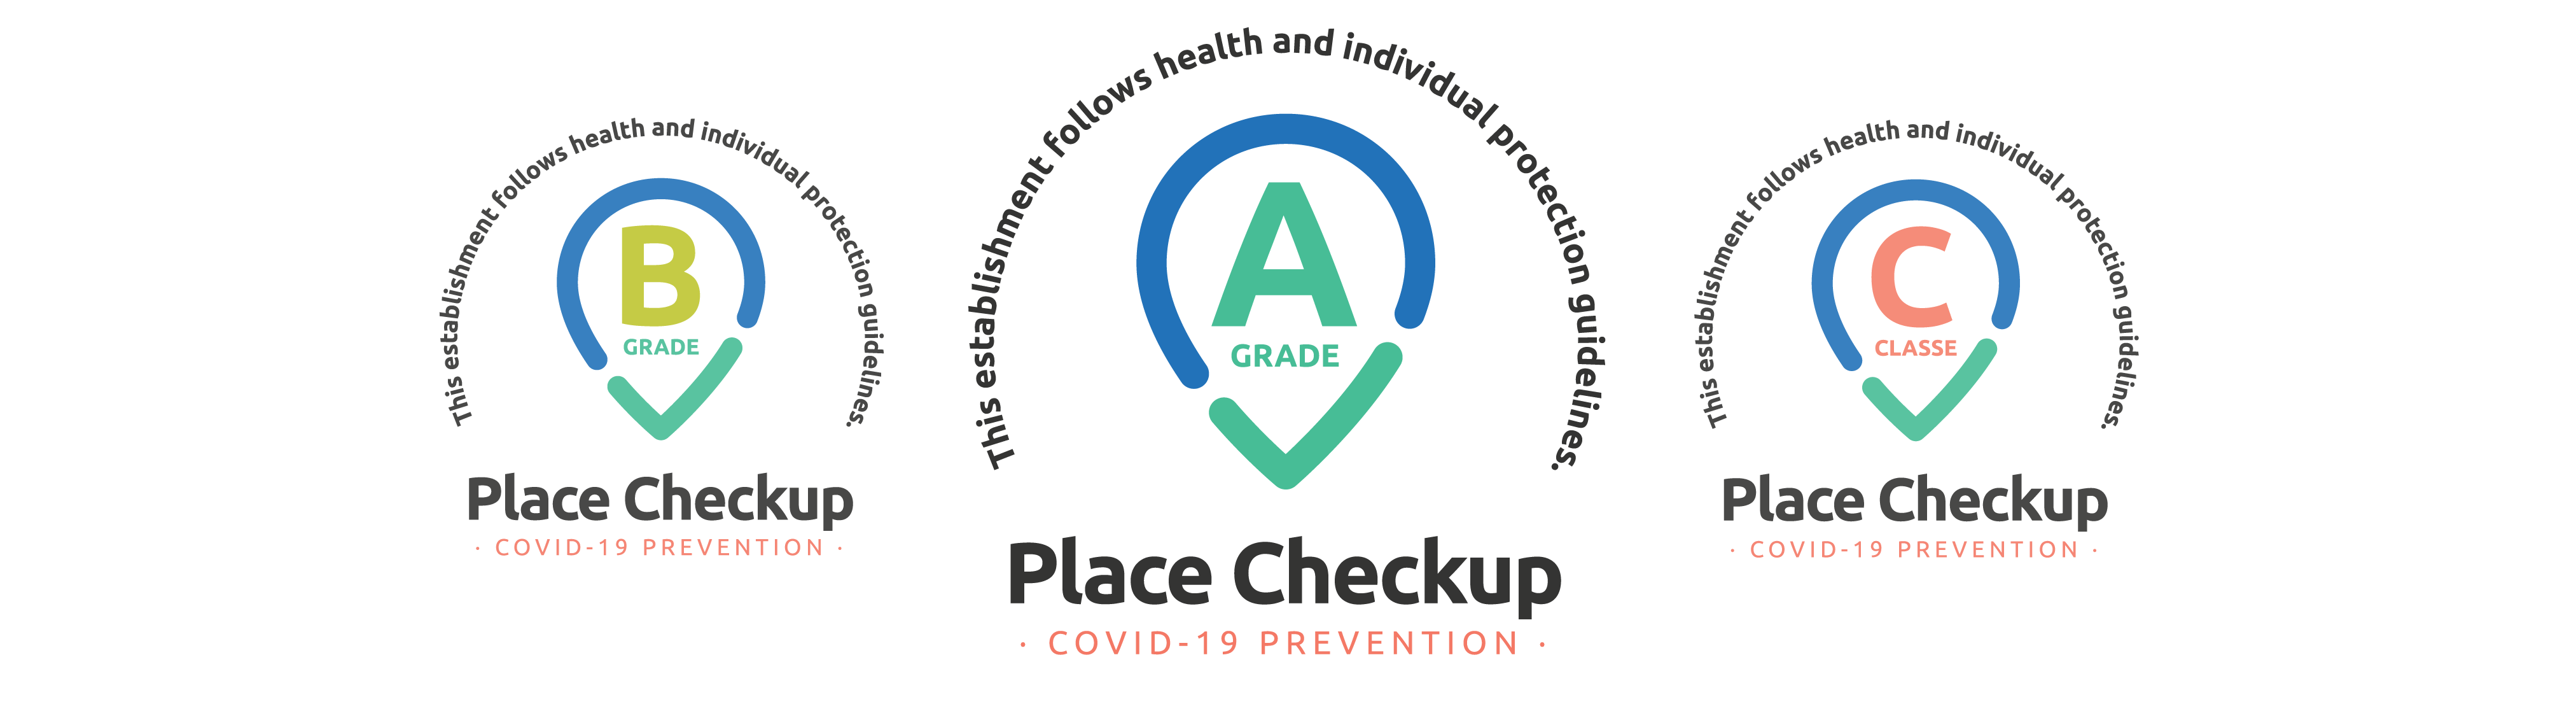 Place Checkup badges for COVID-19 Prevention grade A, B and C